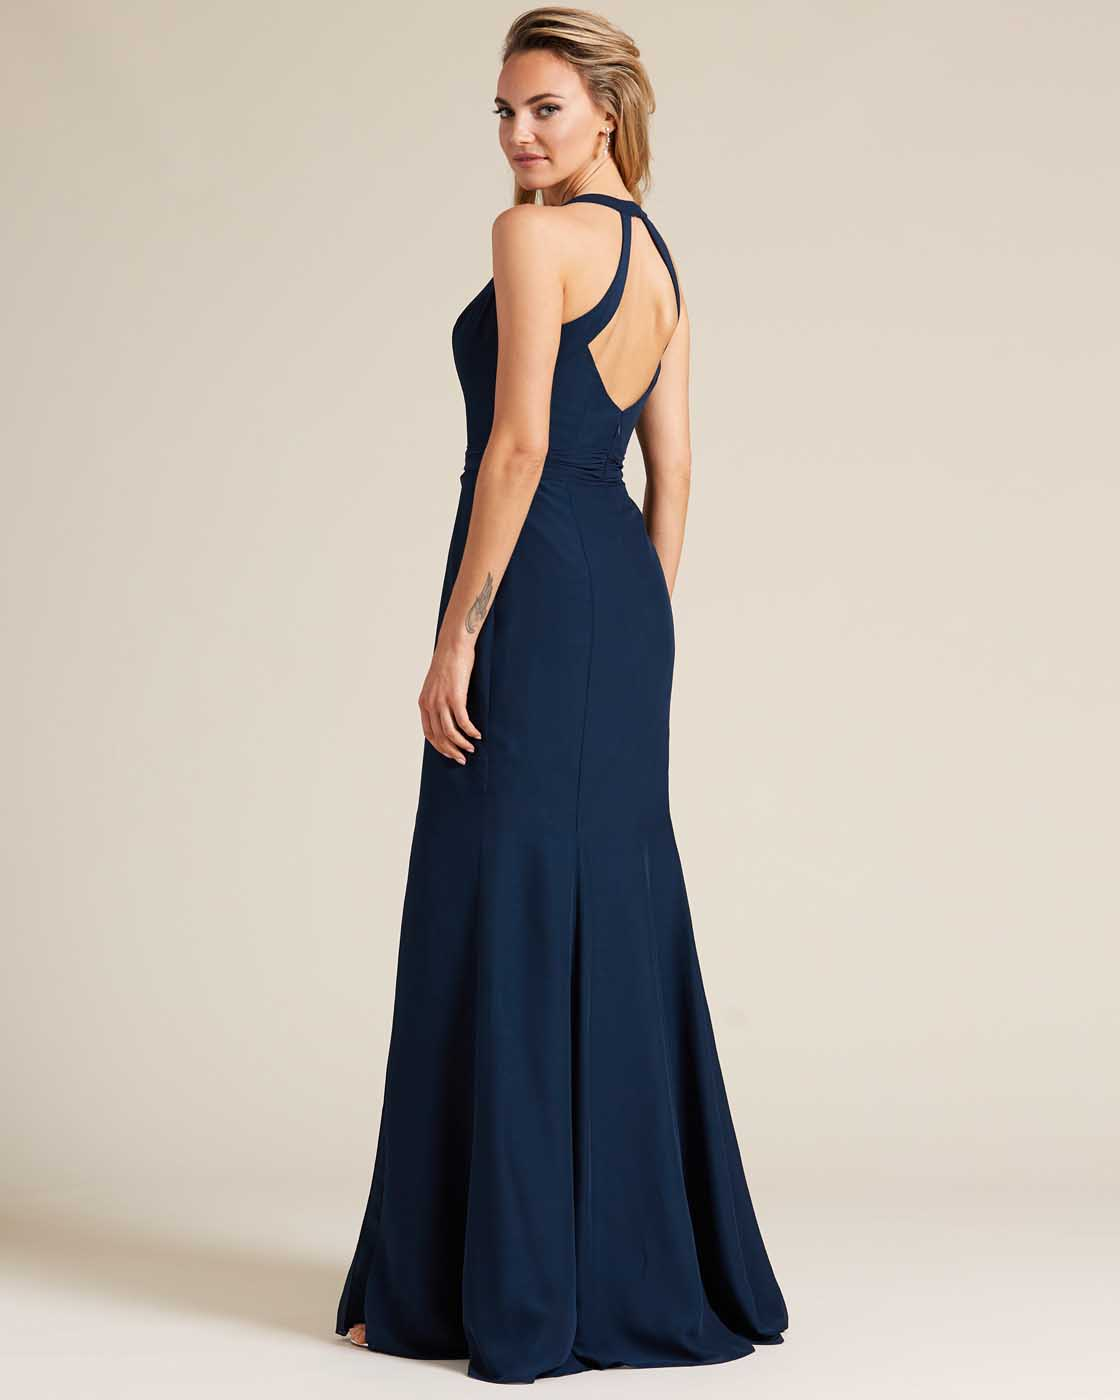 Navy Blue Sleeveless Bow Detail Formal Gown - Back